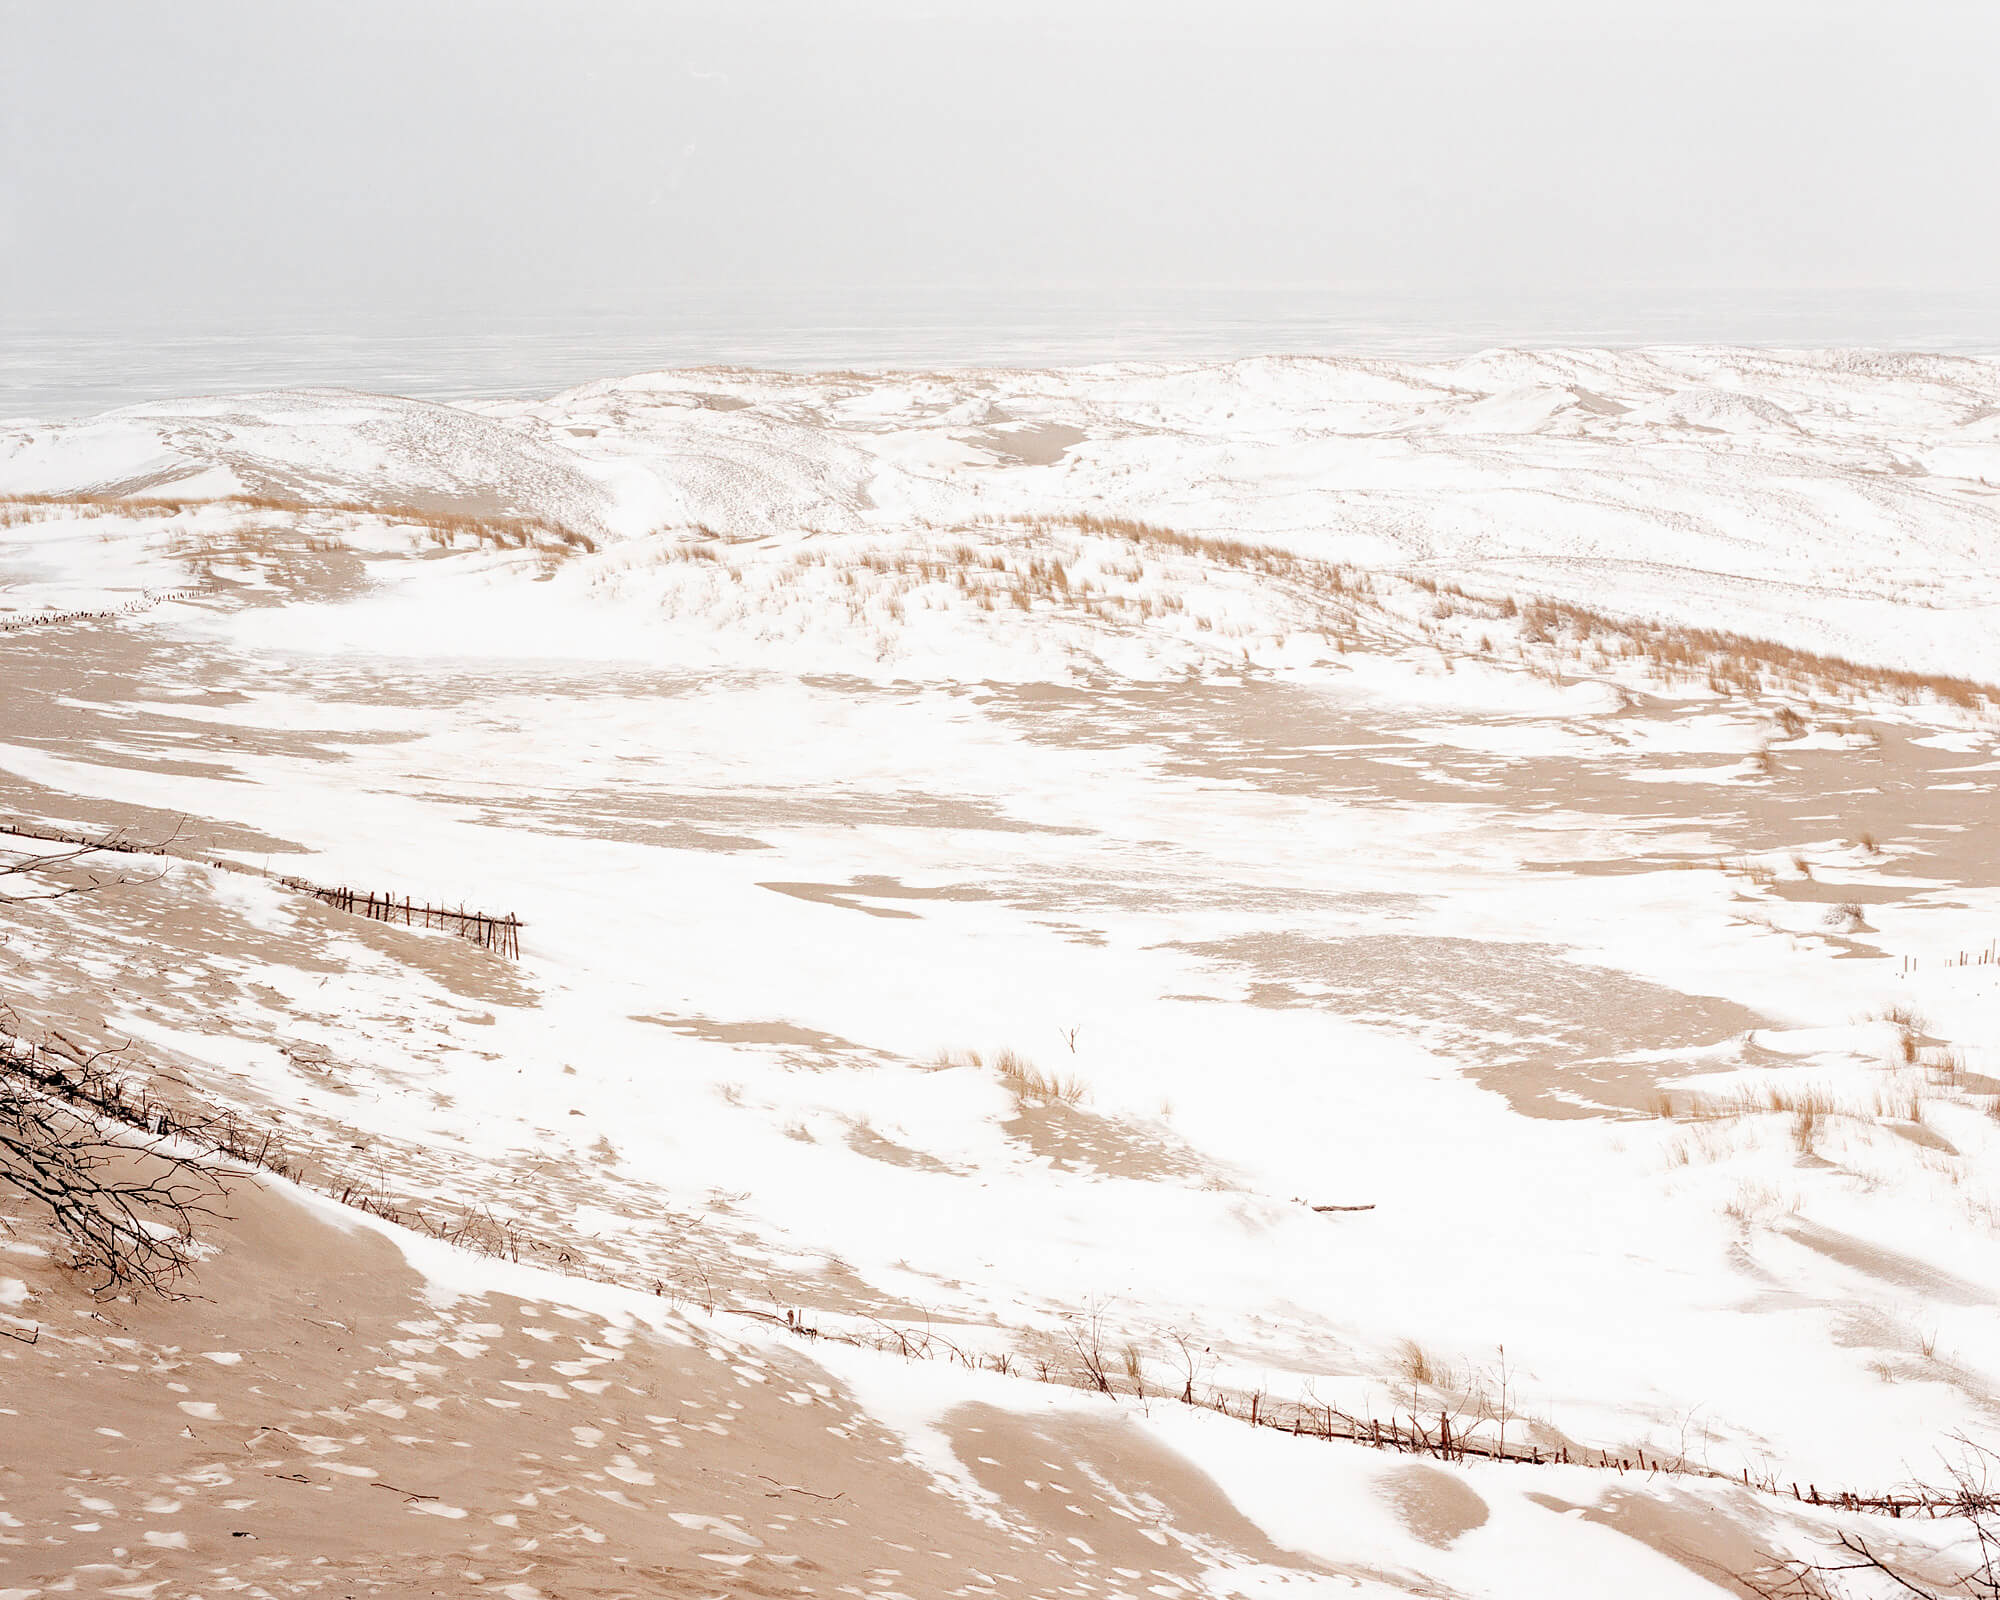 Tadas Kazakevicius - Between Two Shores the south west collective of photography ltd snow covered mountain